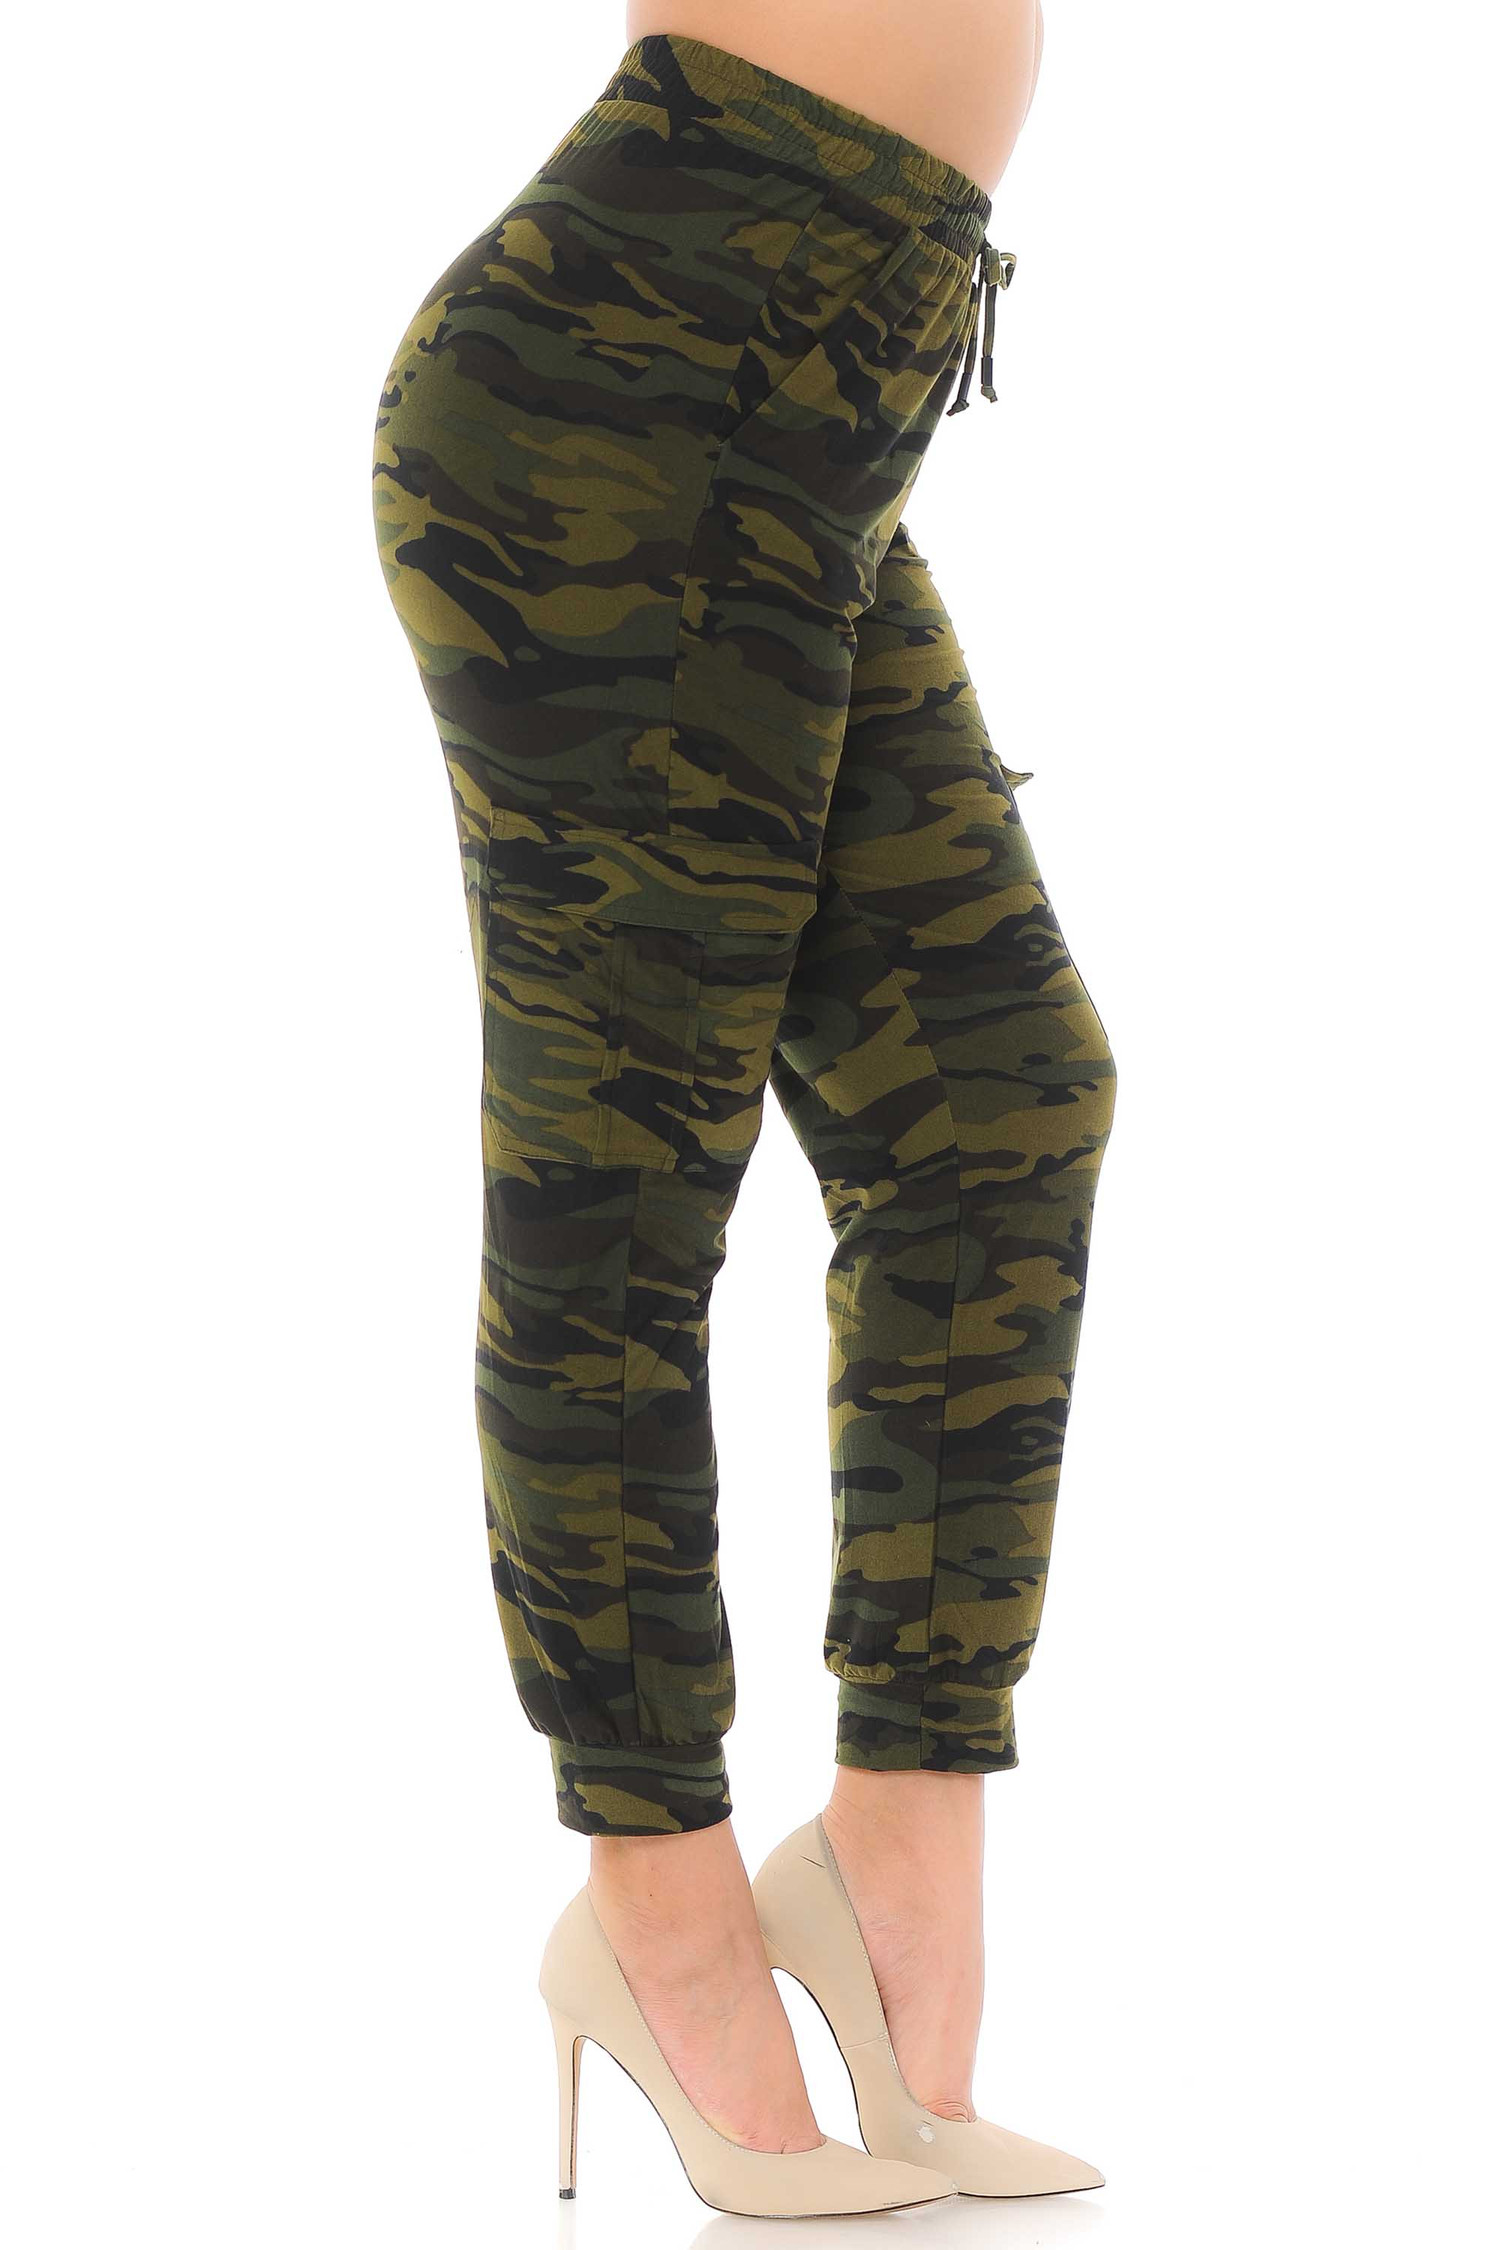 Brushed  Green Camouflage Cargo Plus Size Joggers - New Mix